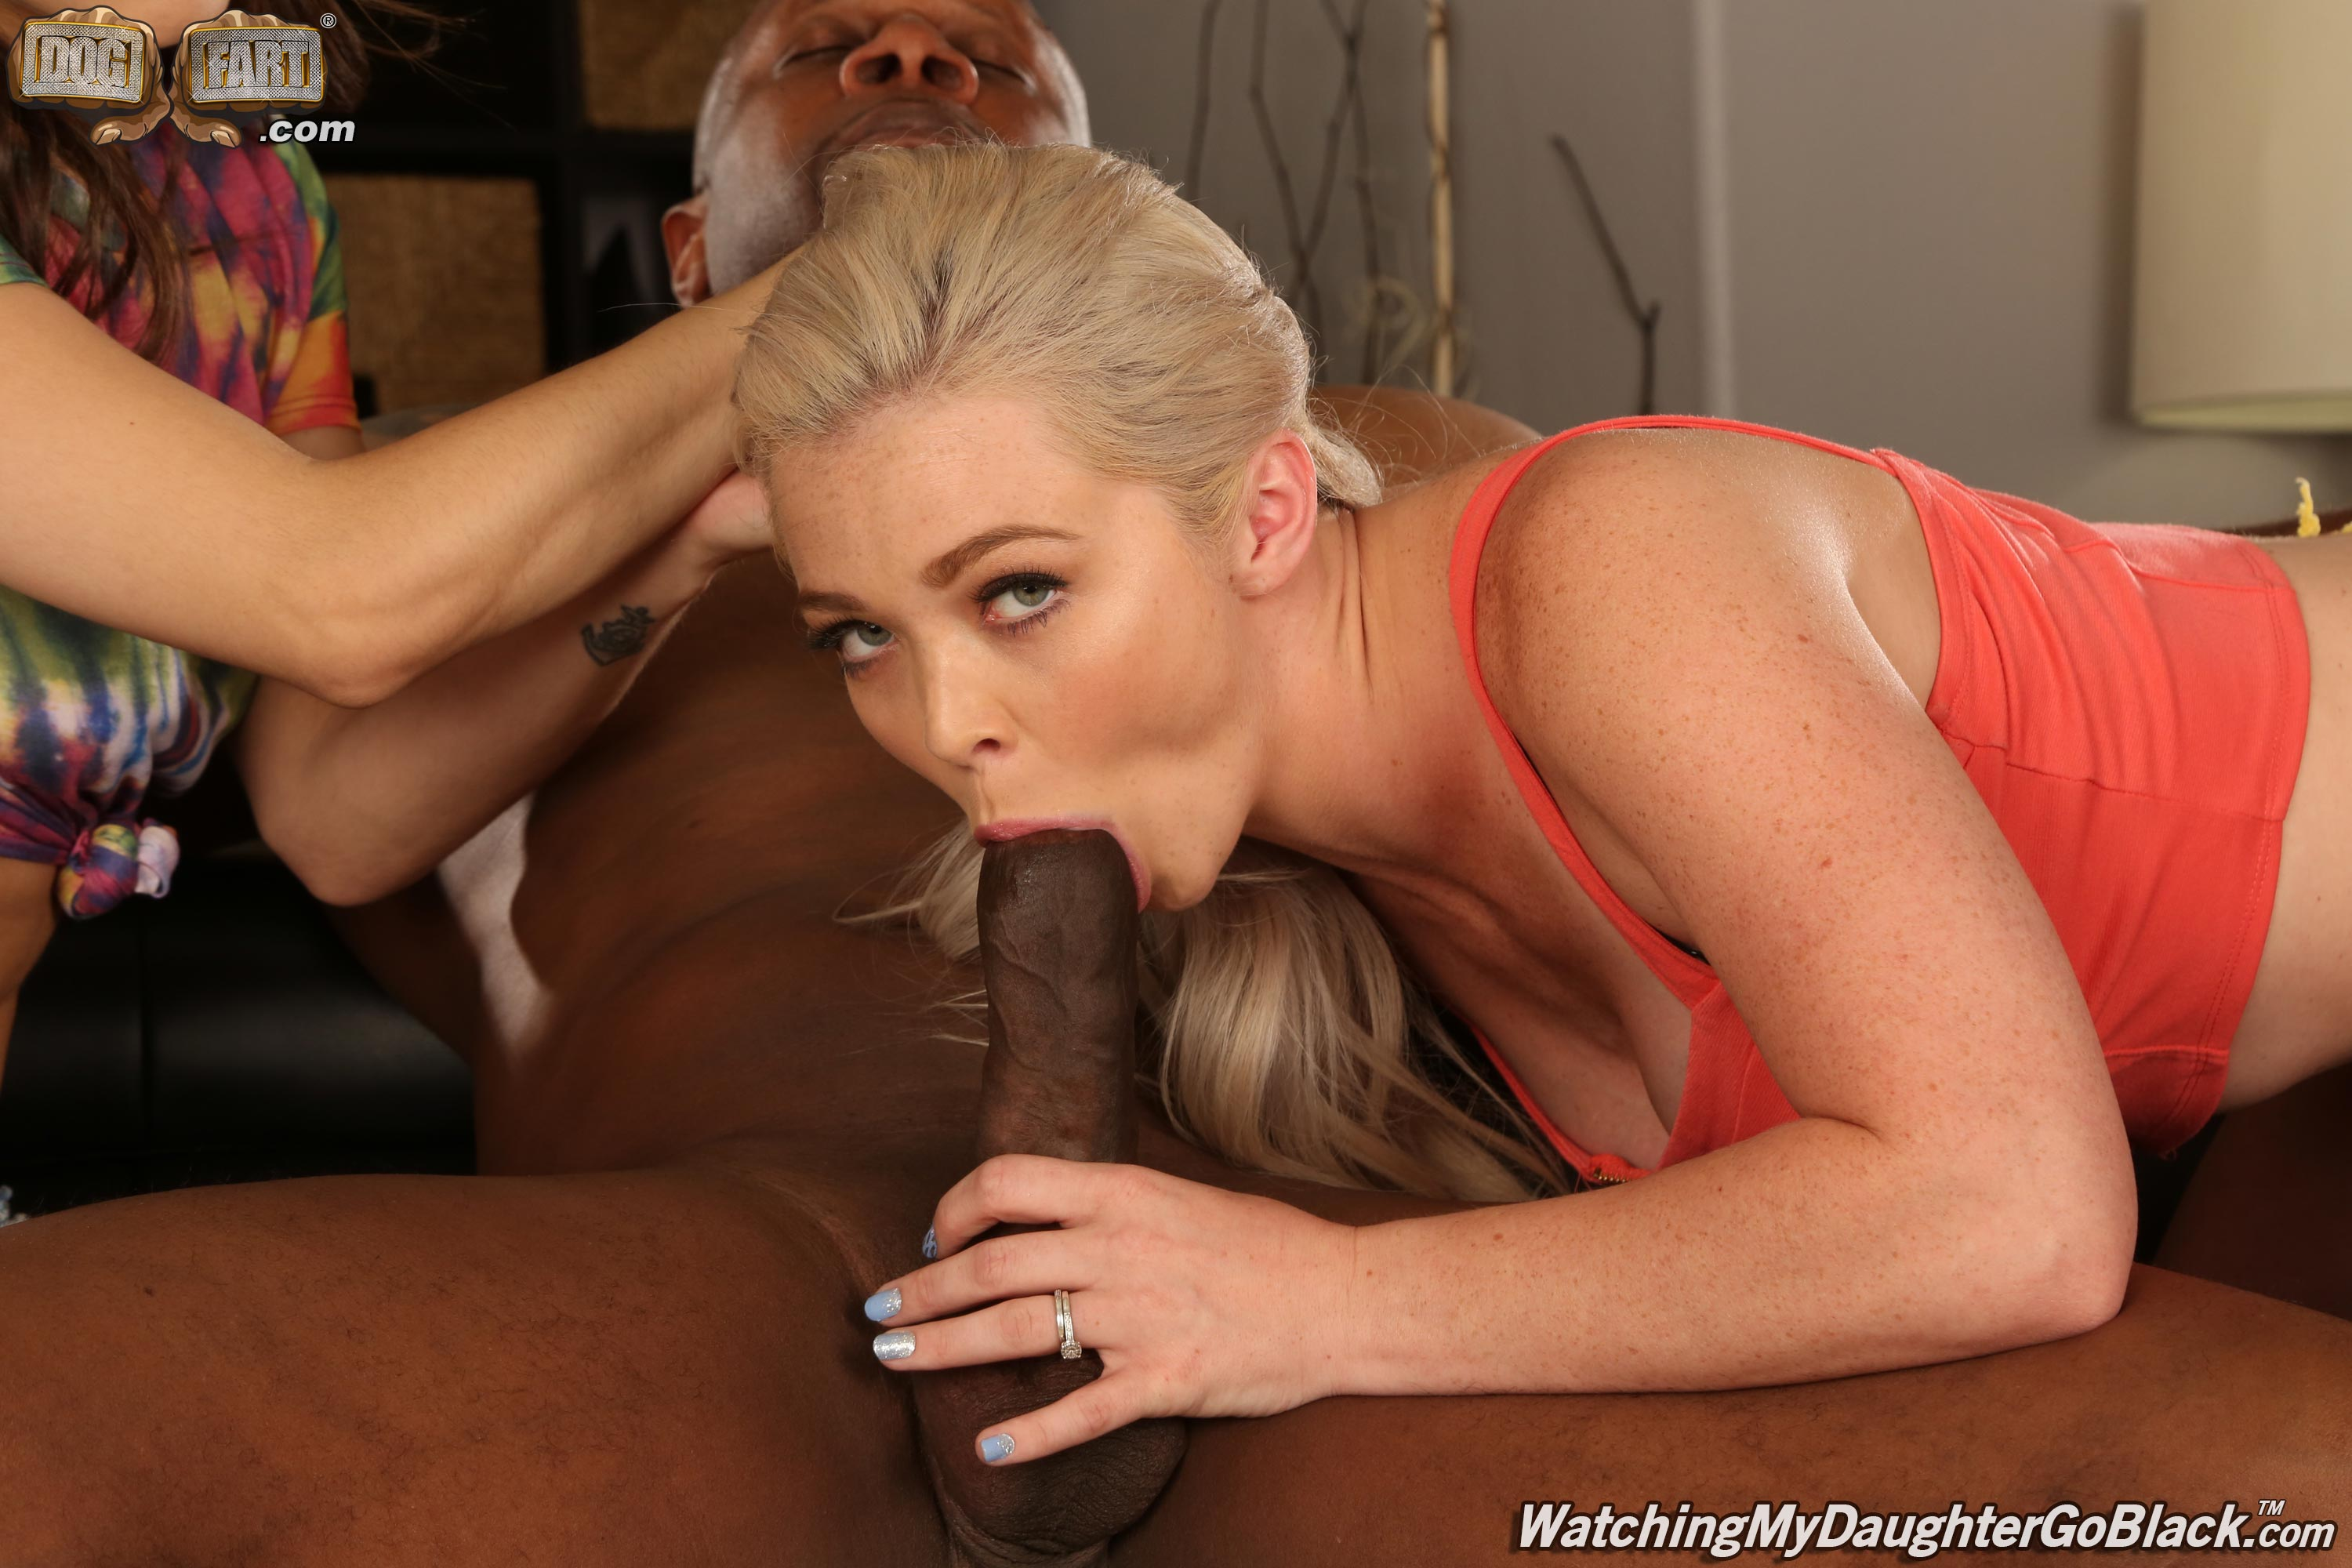 Dogfart 'and Spencer Bradley - Watching My Daughter Go Black' starring Kay Carter (Photo 7)